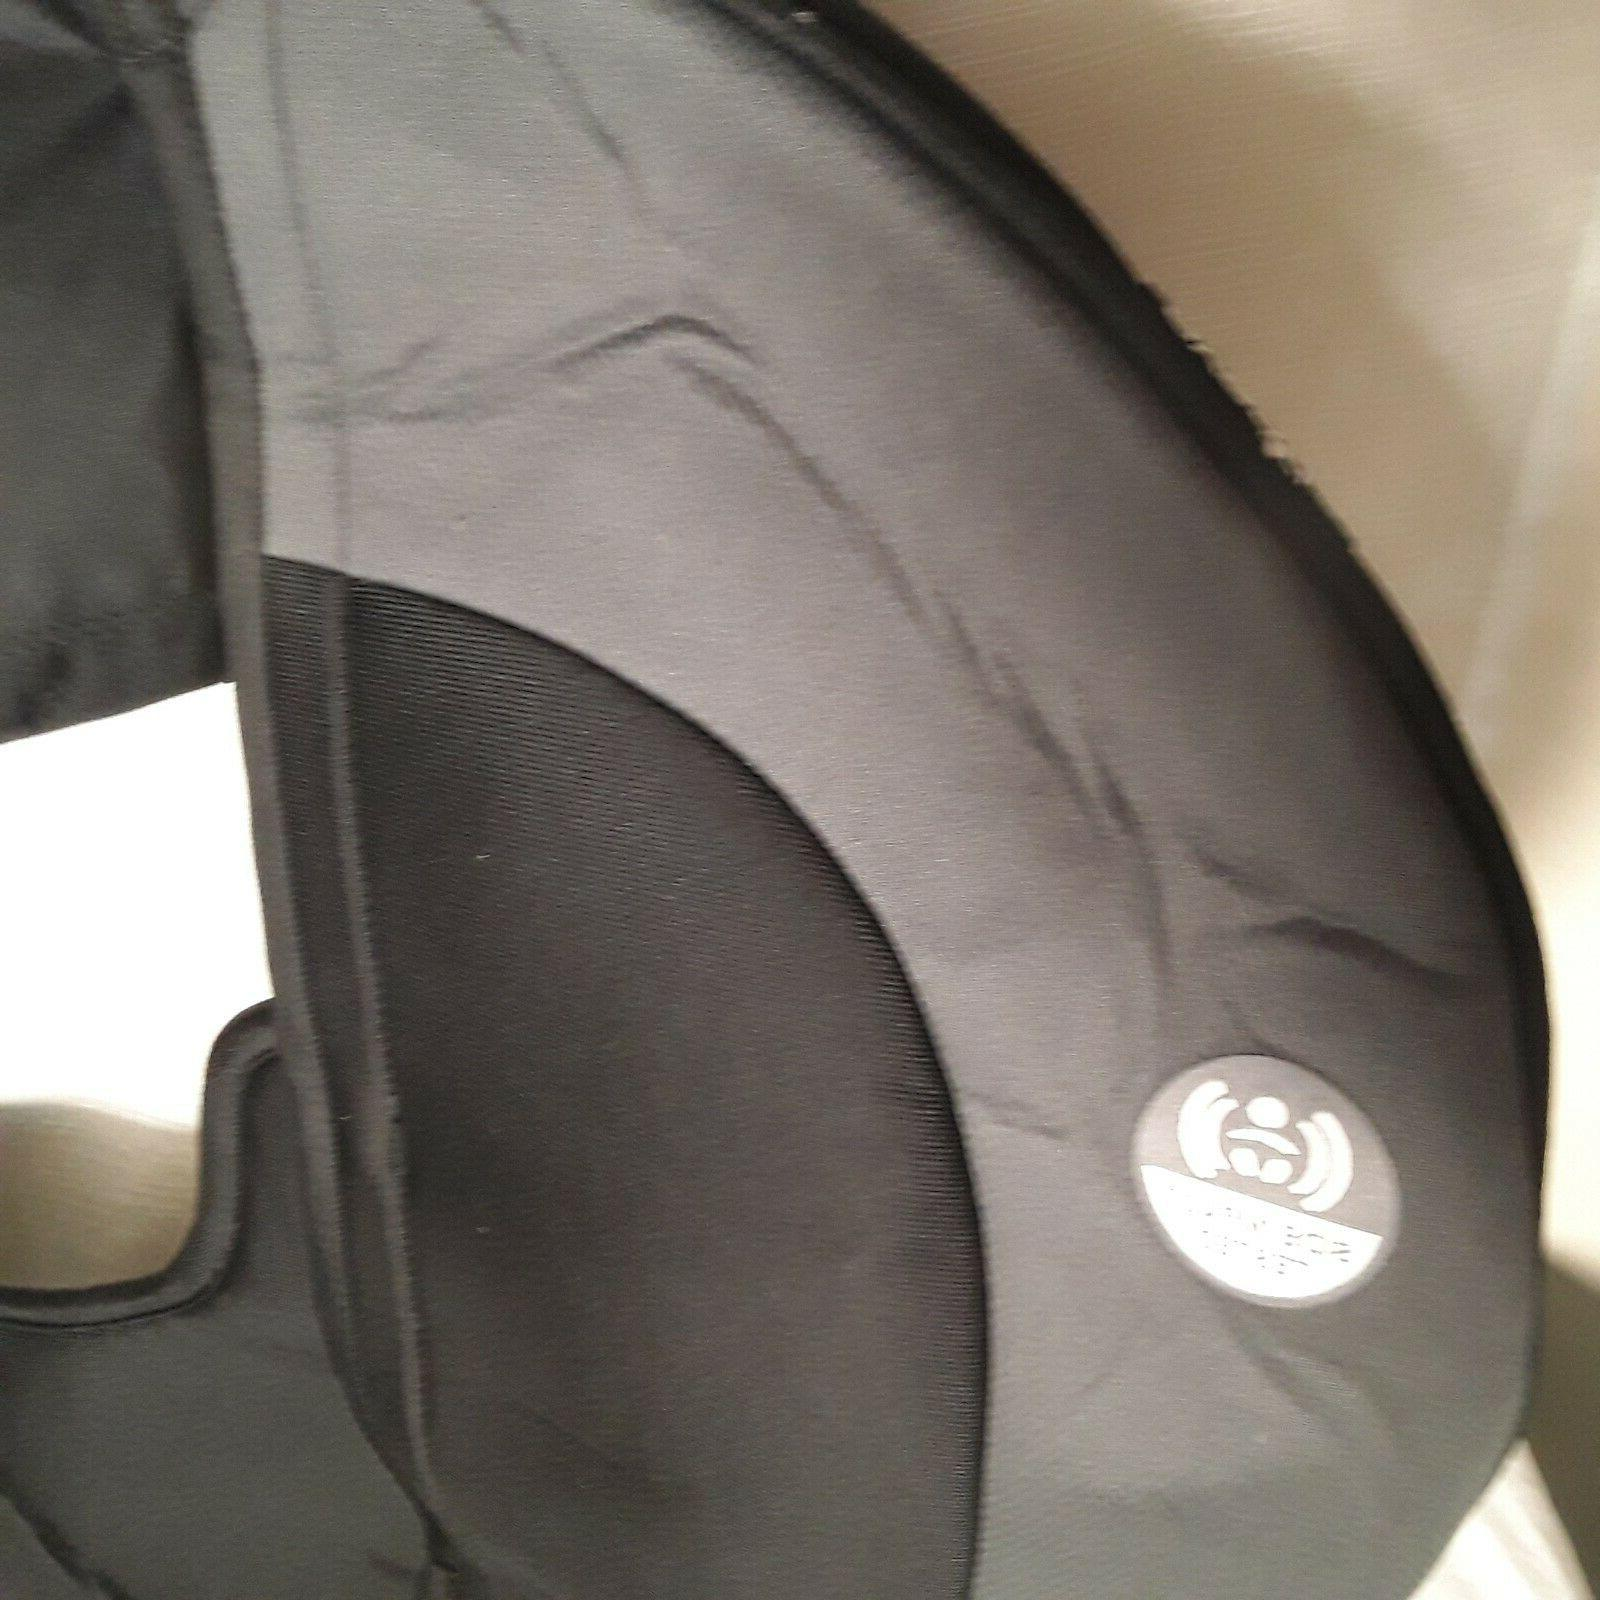 NEW Evenflo Convertible Seat COVER Part Only